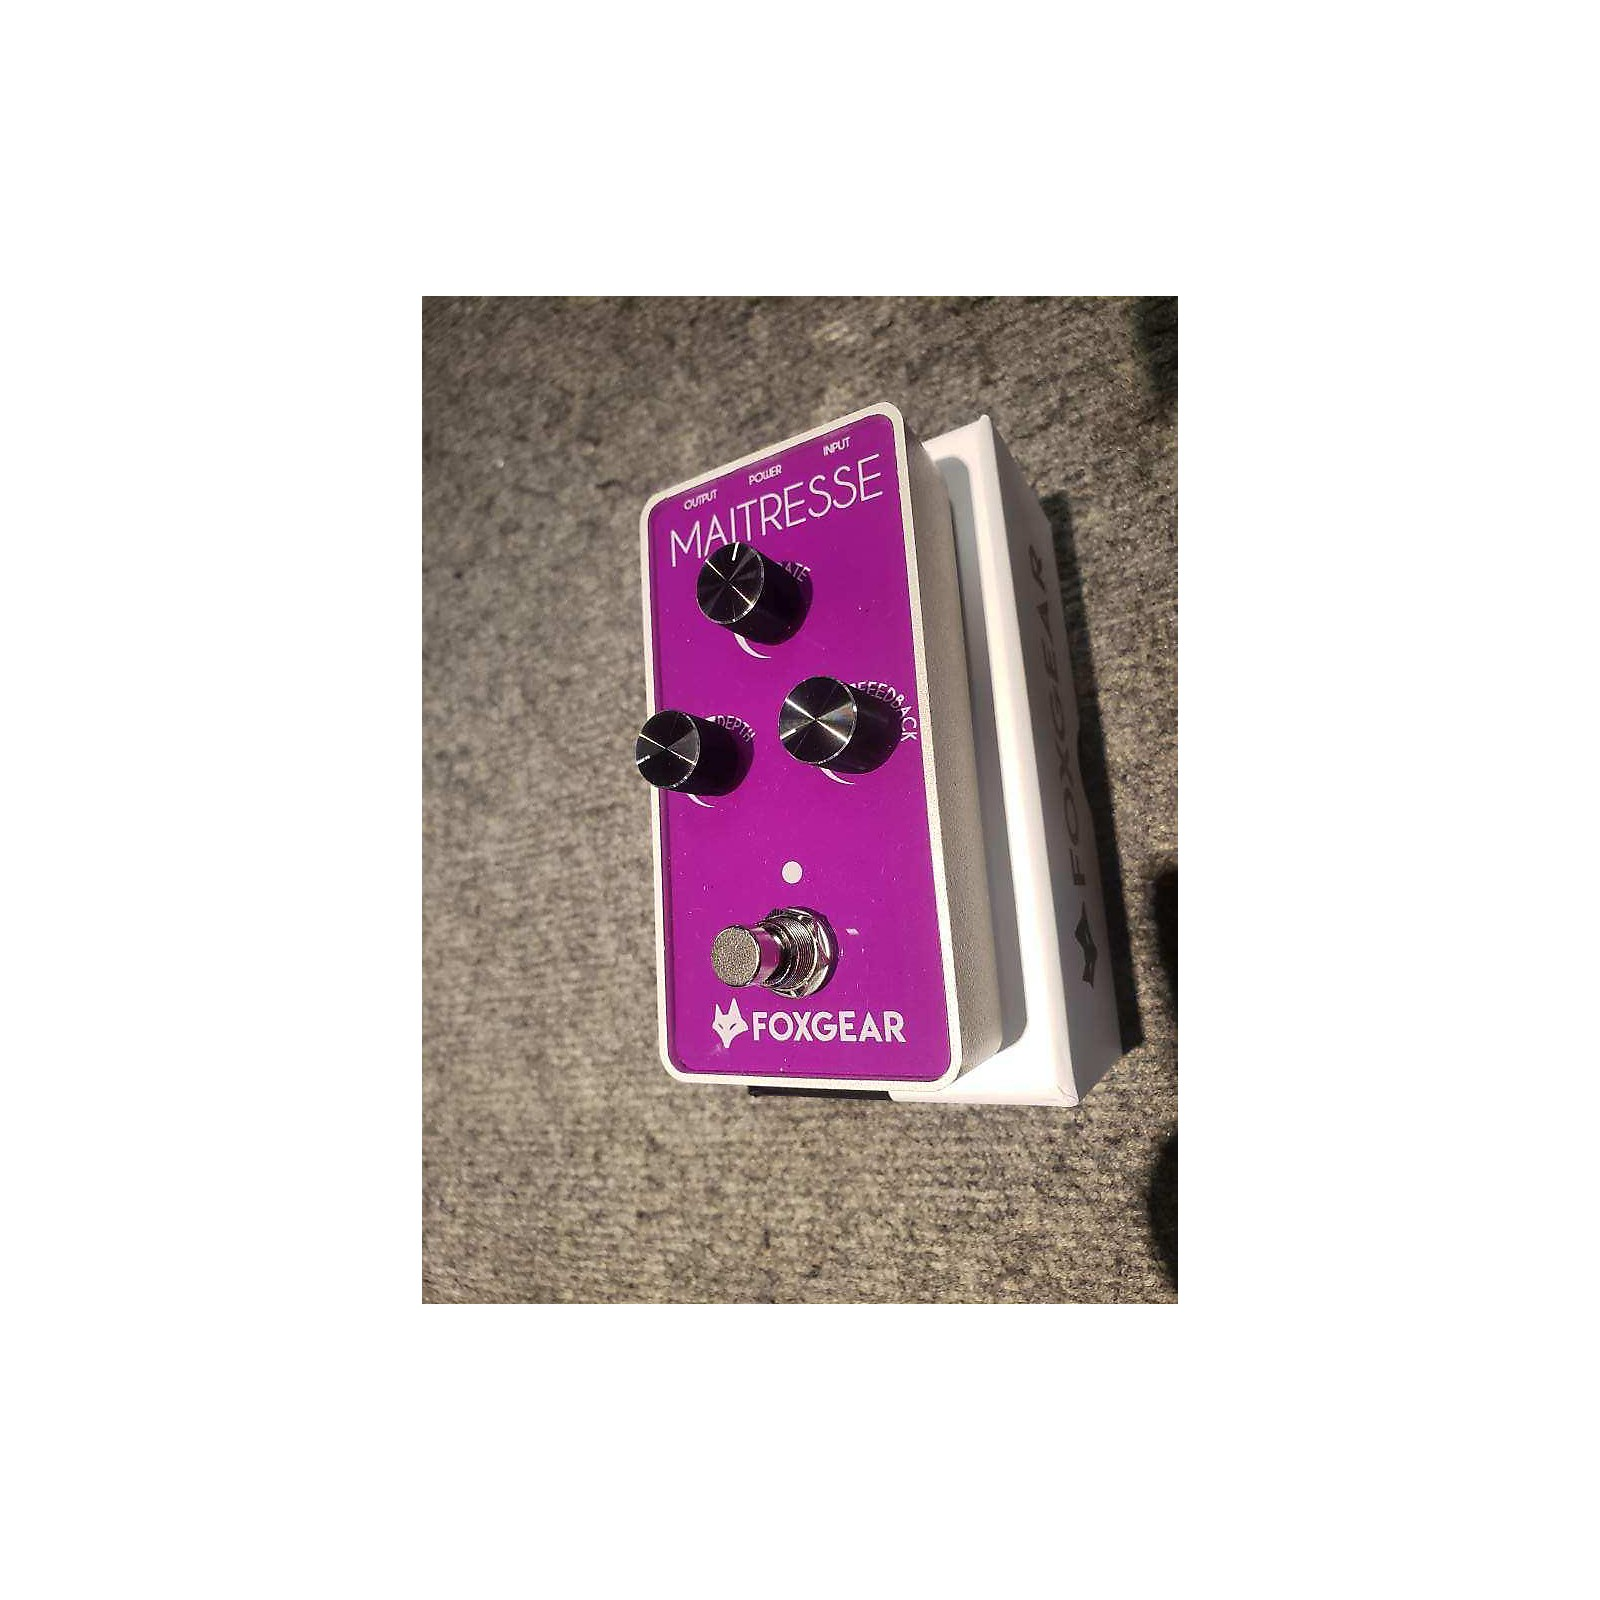 In Store Used Used Foxgear Maitresse Effect Pedal